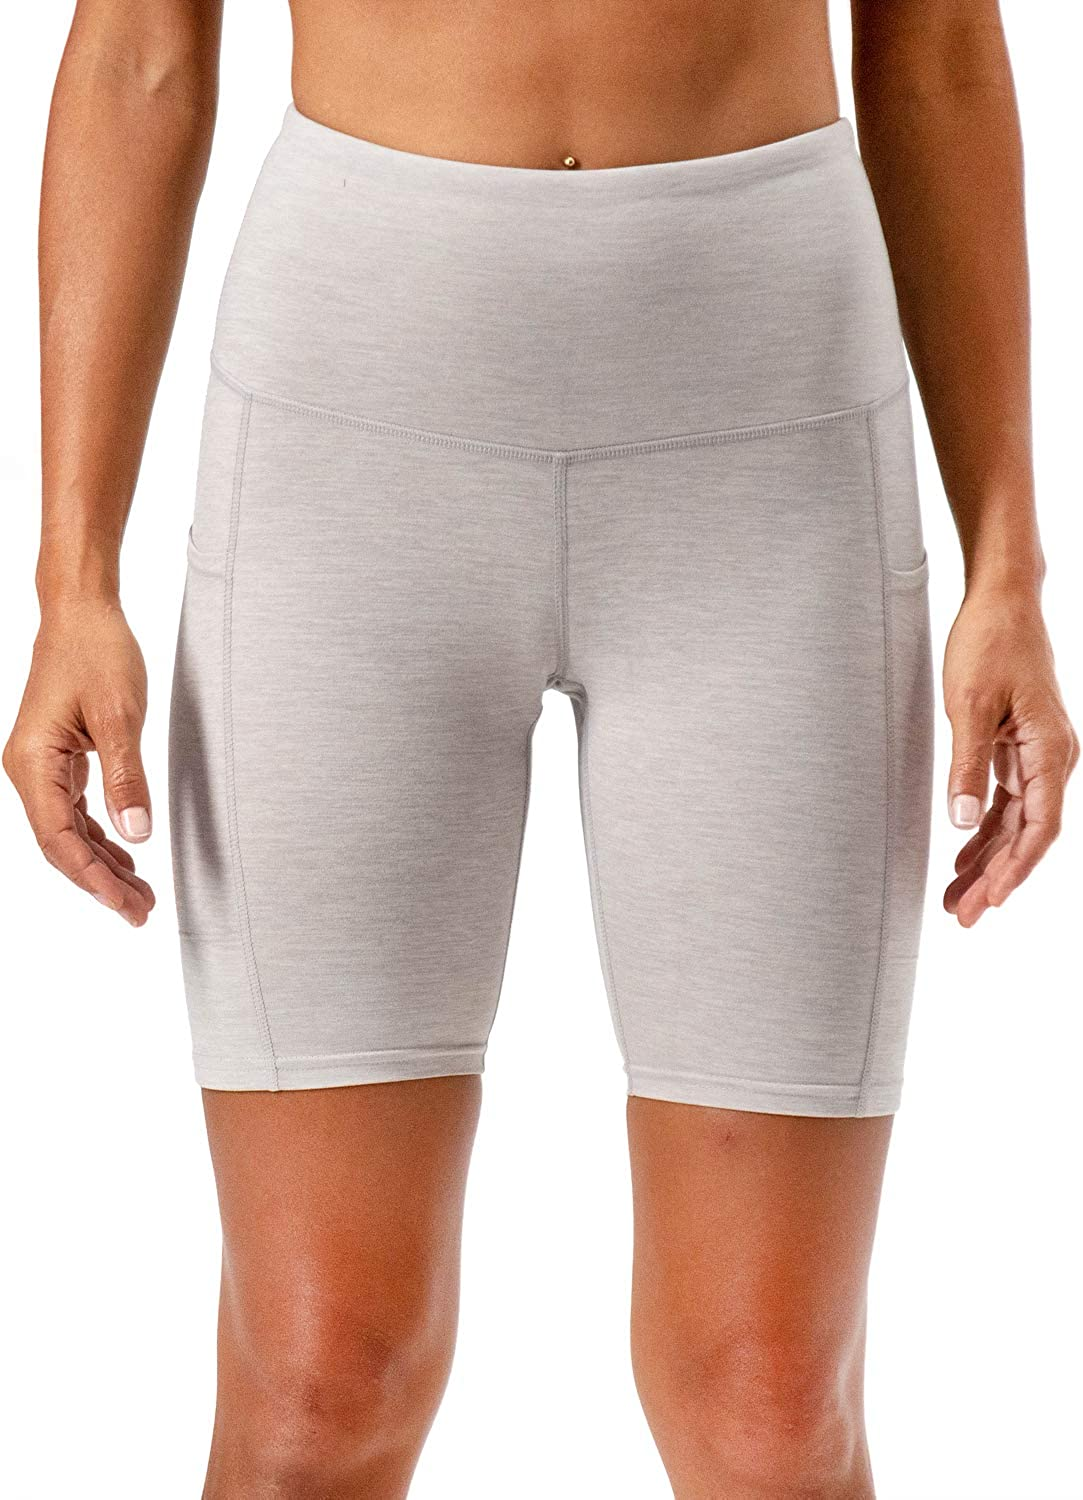 DEVOPS Womens 2-Pack High Waist Workout Yoga Running Exercise Shorts with Side Pockets